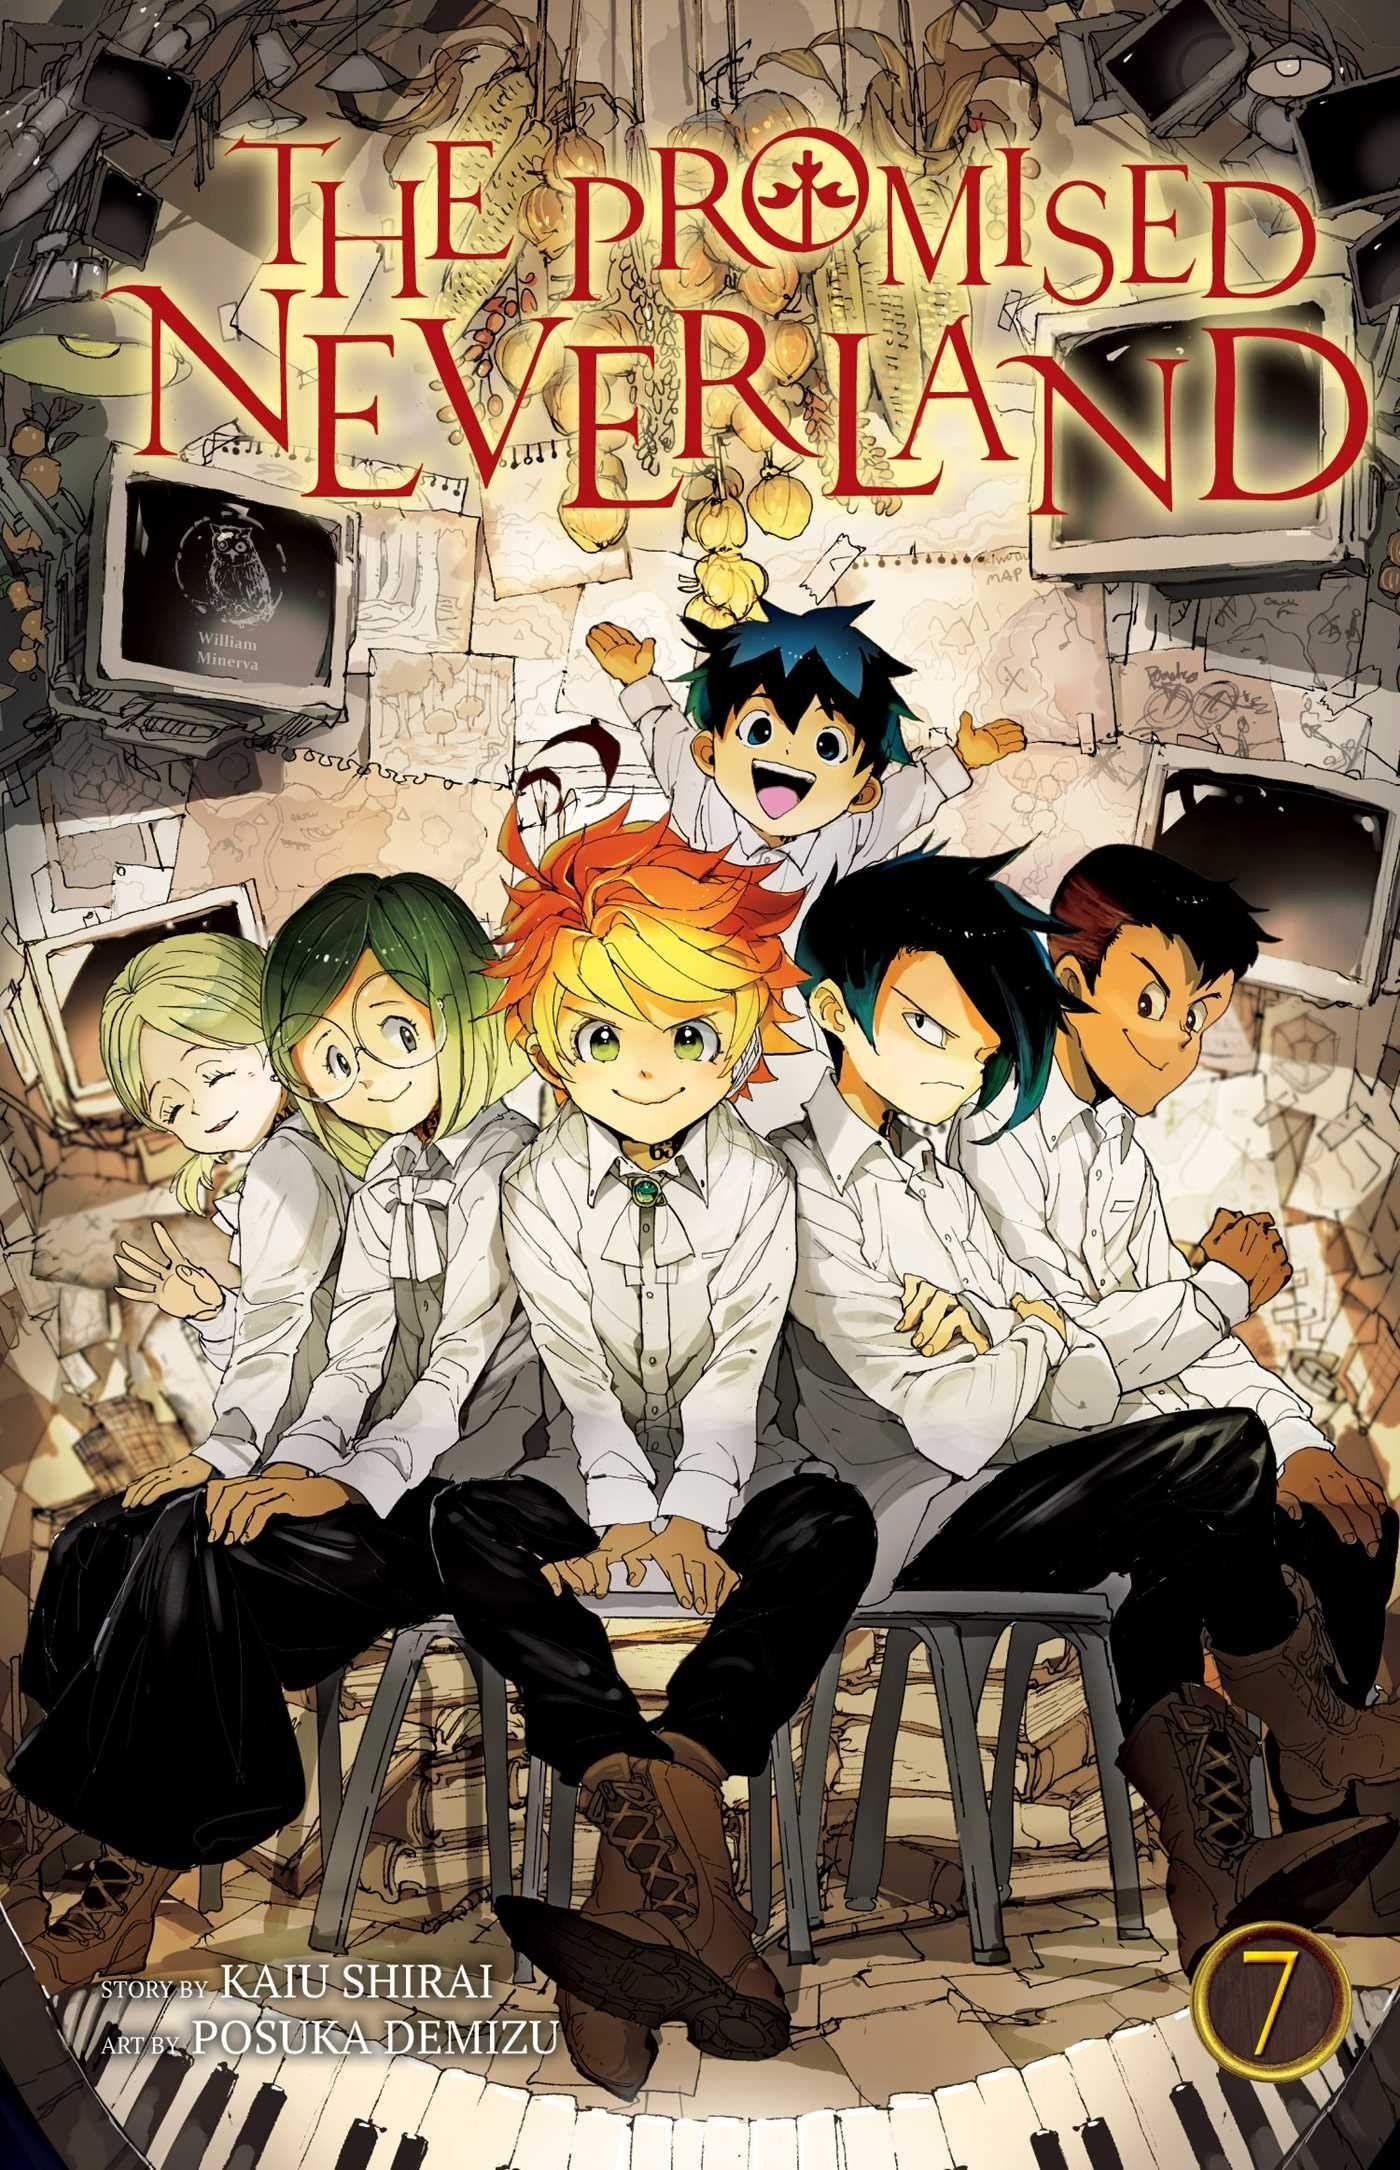 The Promised Neverland, Vol. 7: Amazon.co.uk: Kaiu Shirai